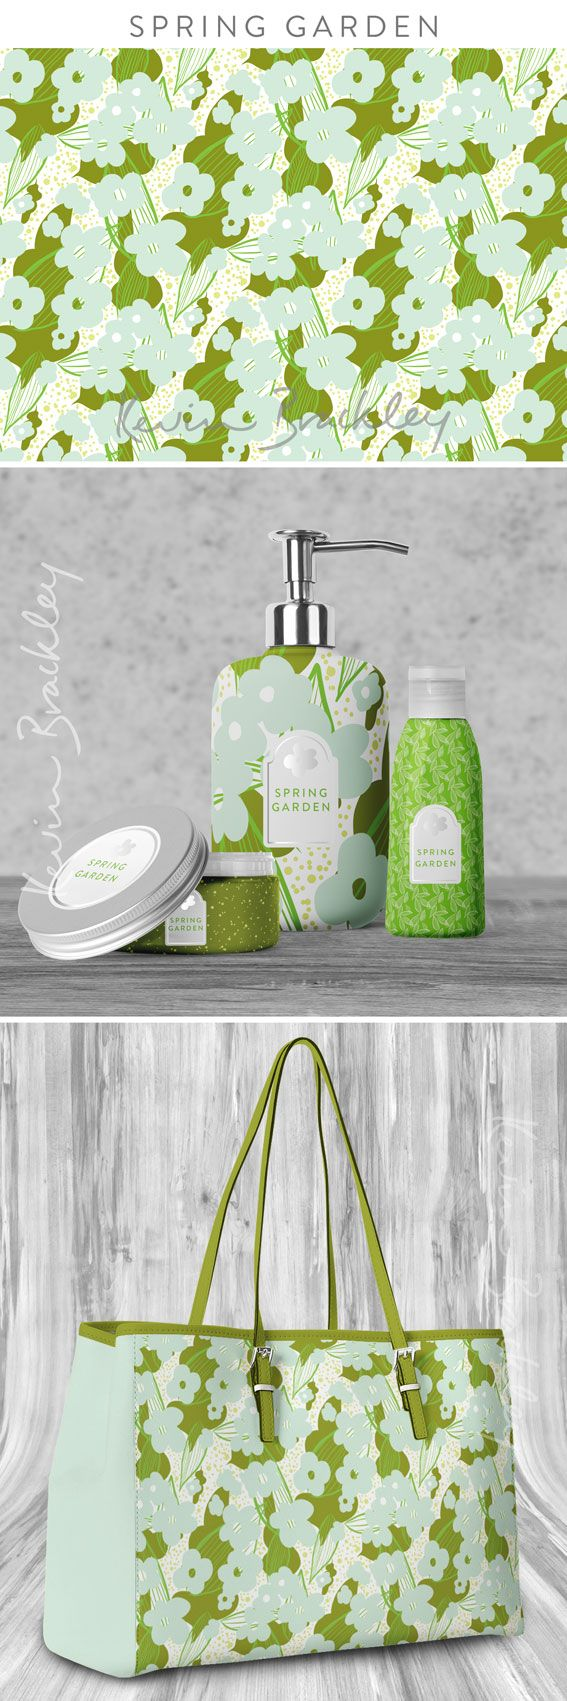 Cosmetic packaging and bag concepts in my Spring Garden collection